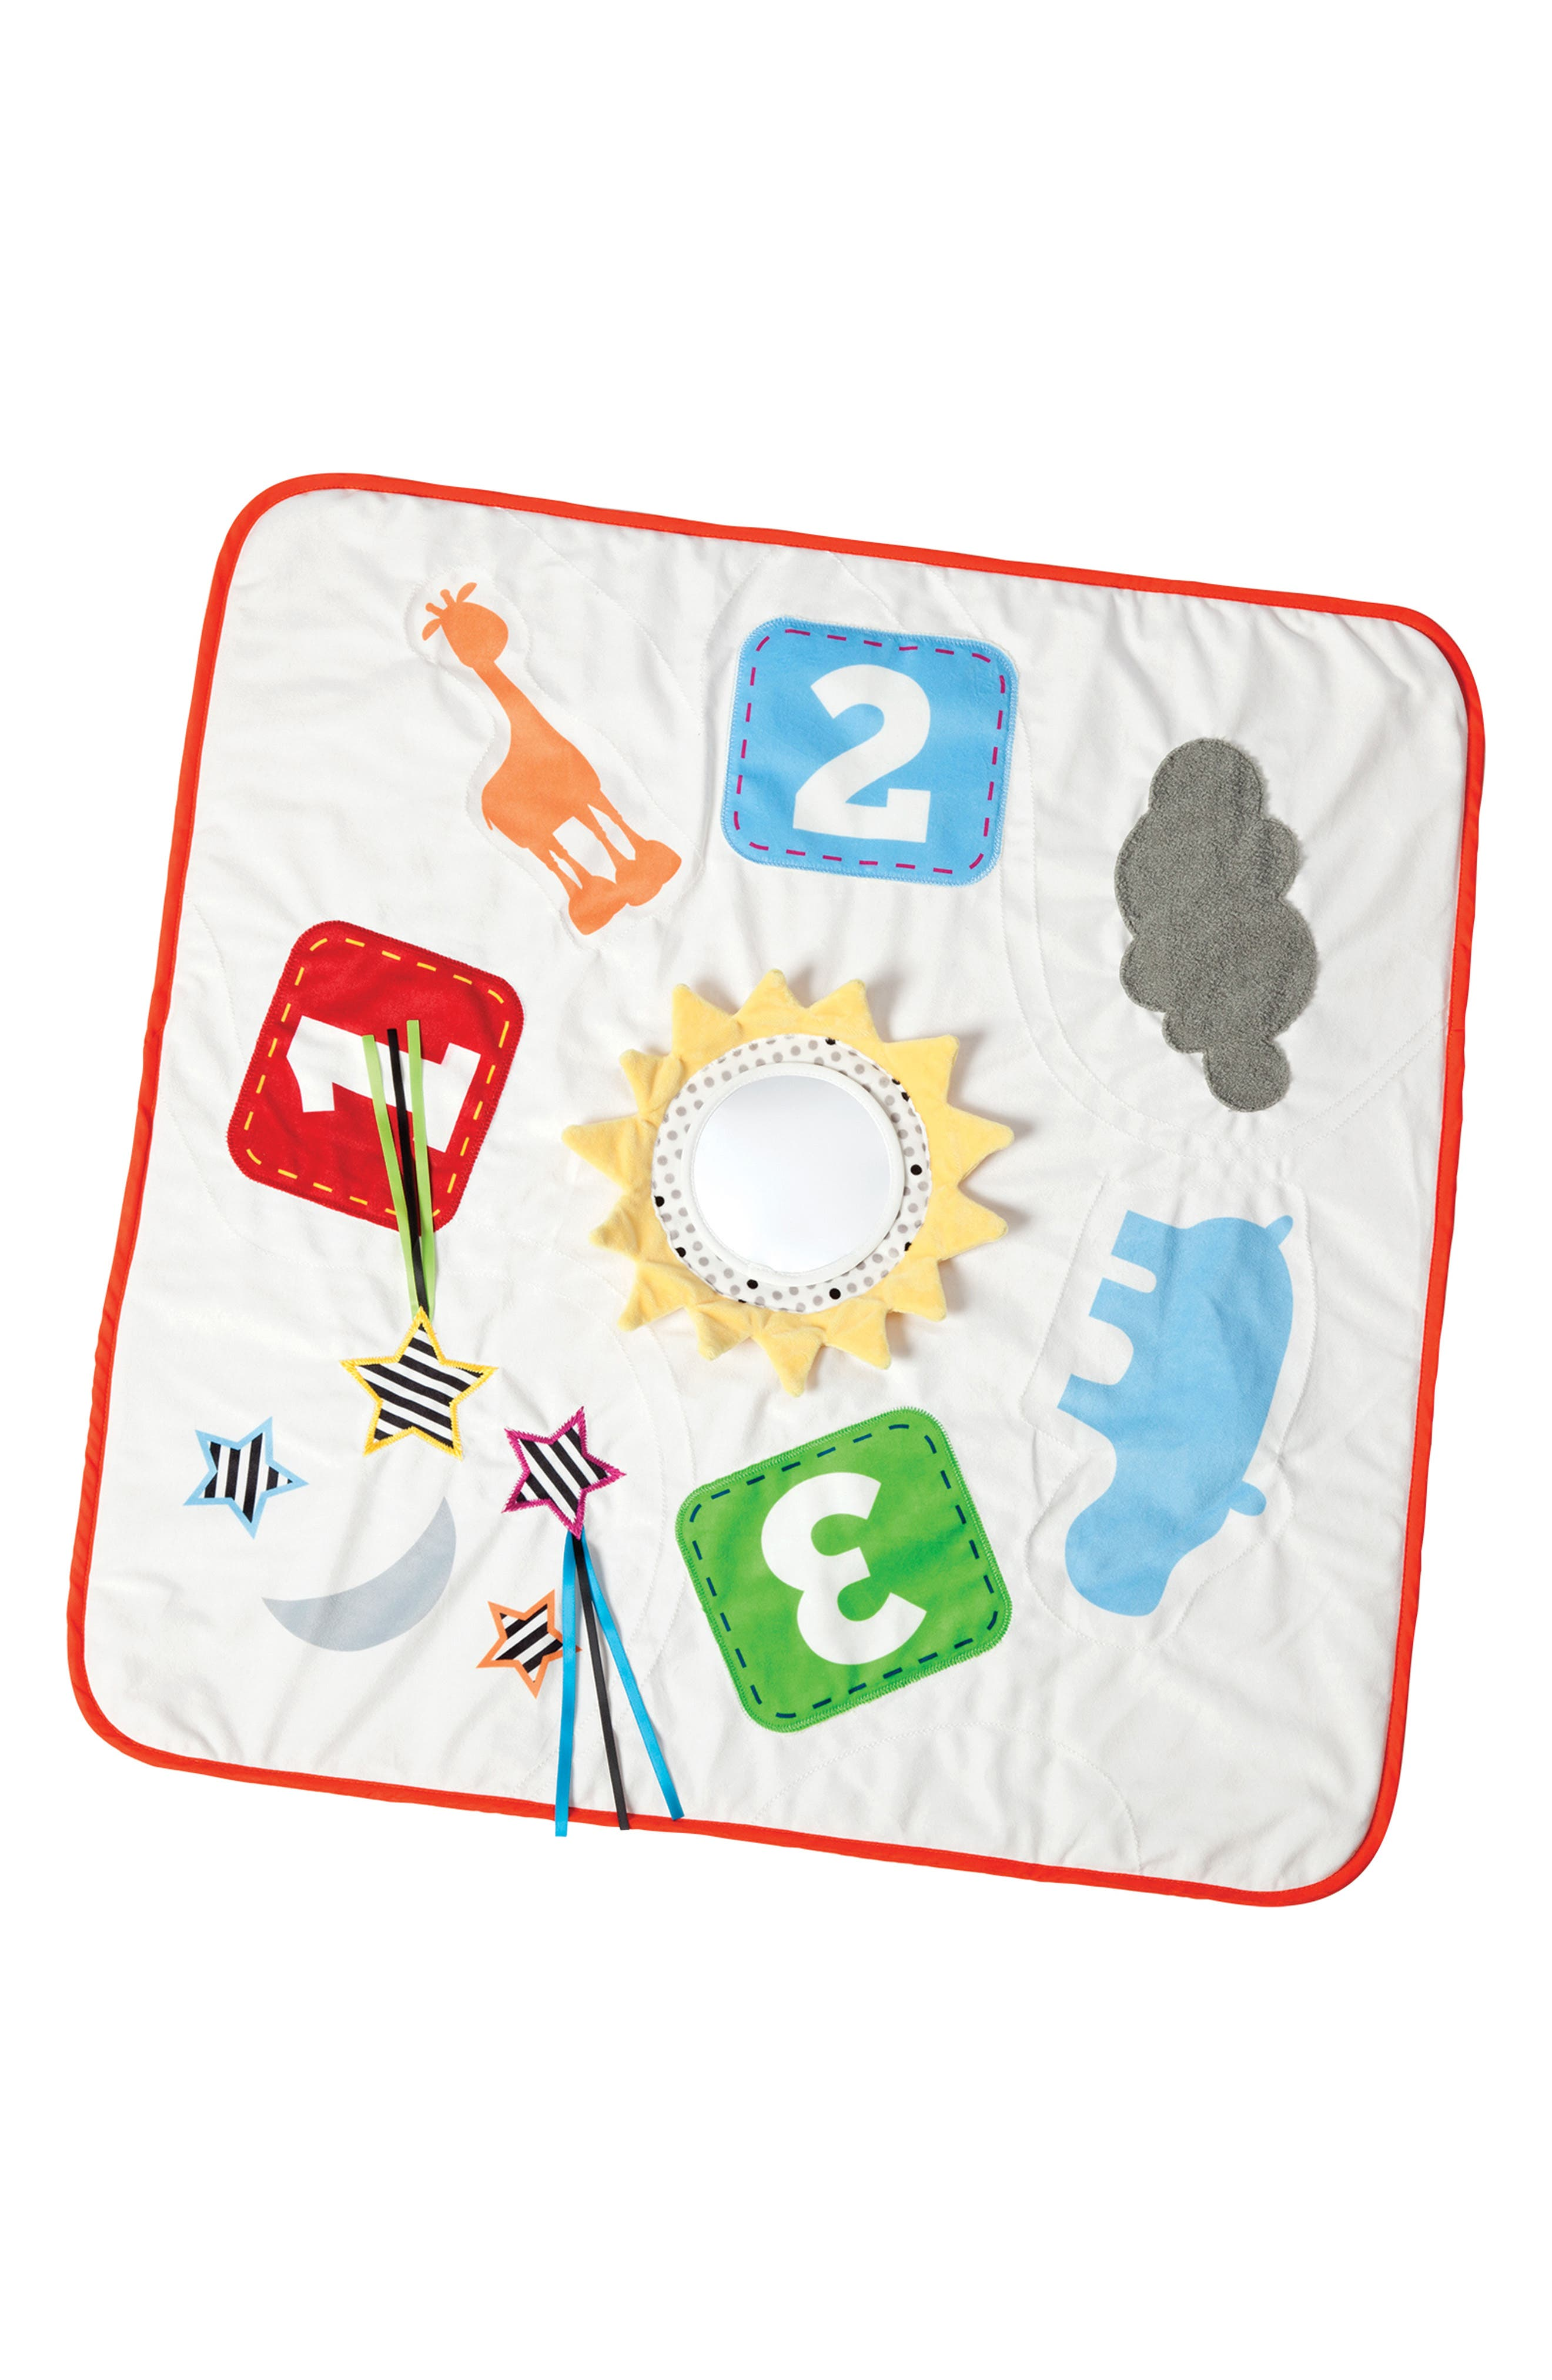 Giggle Playmat,                         Main,                         color, White